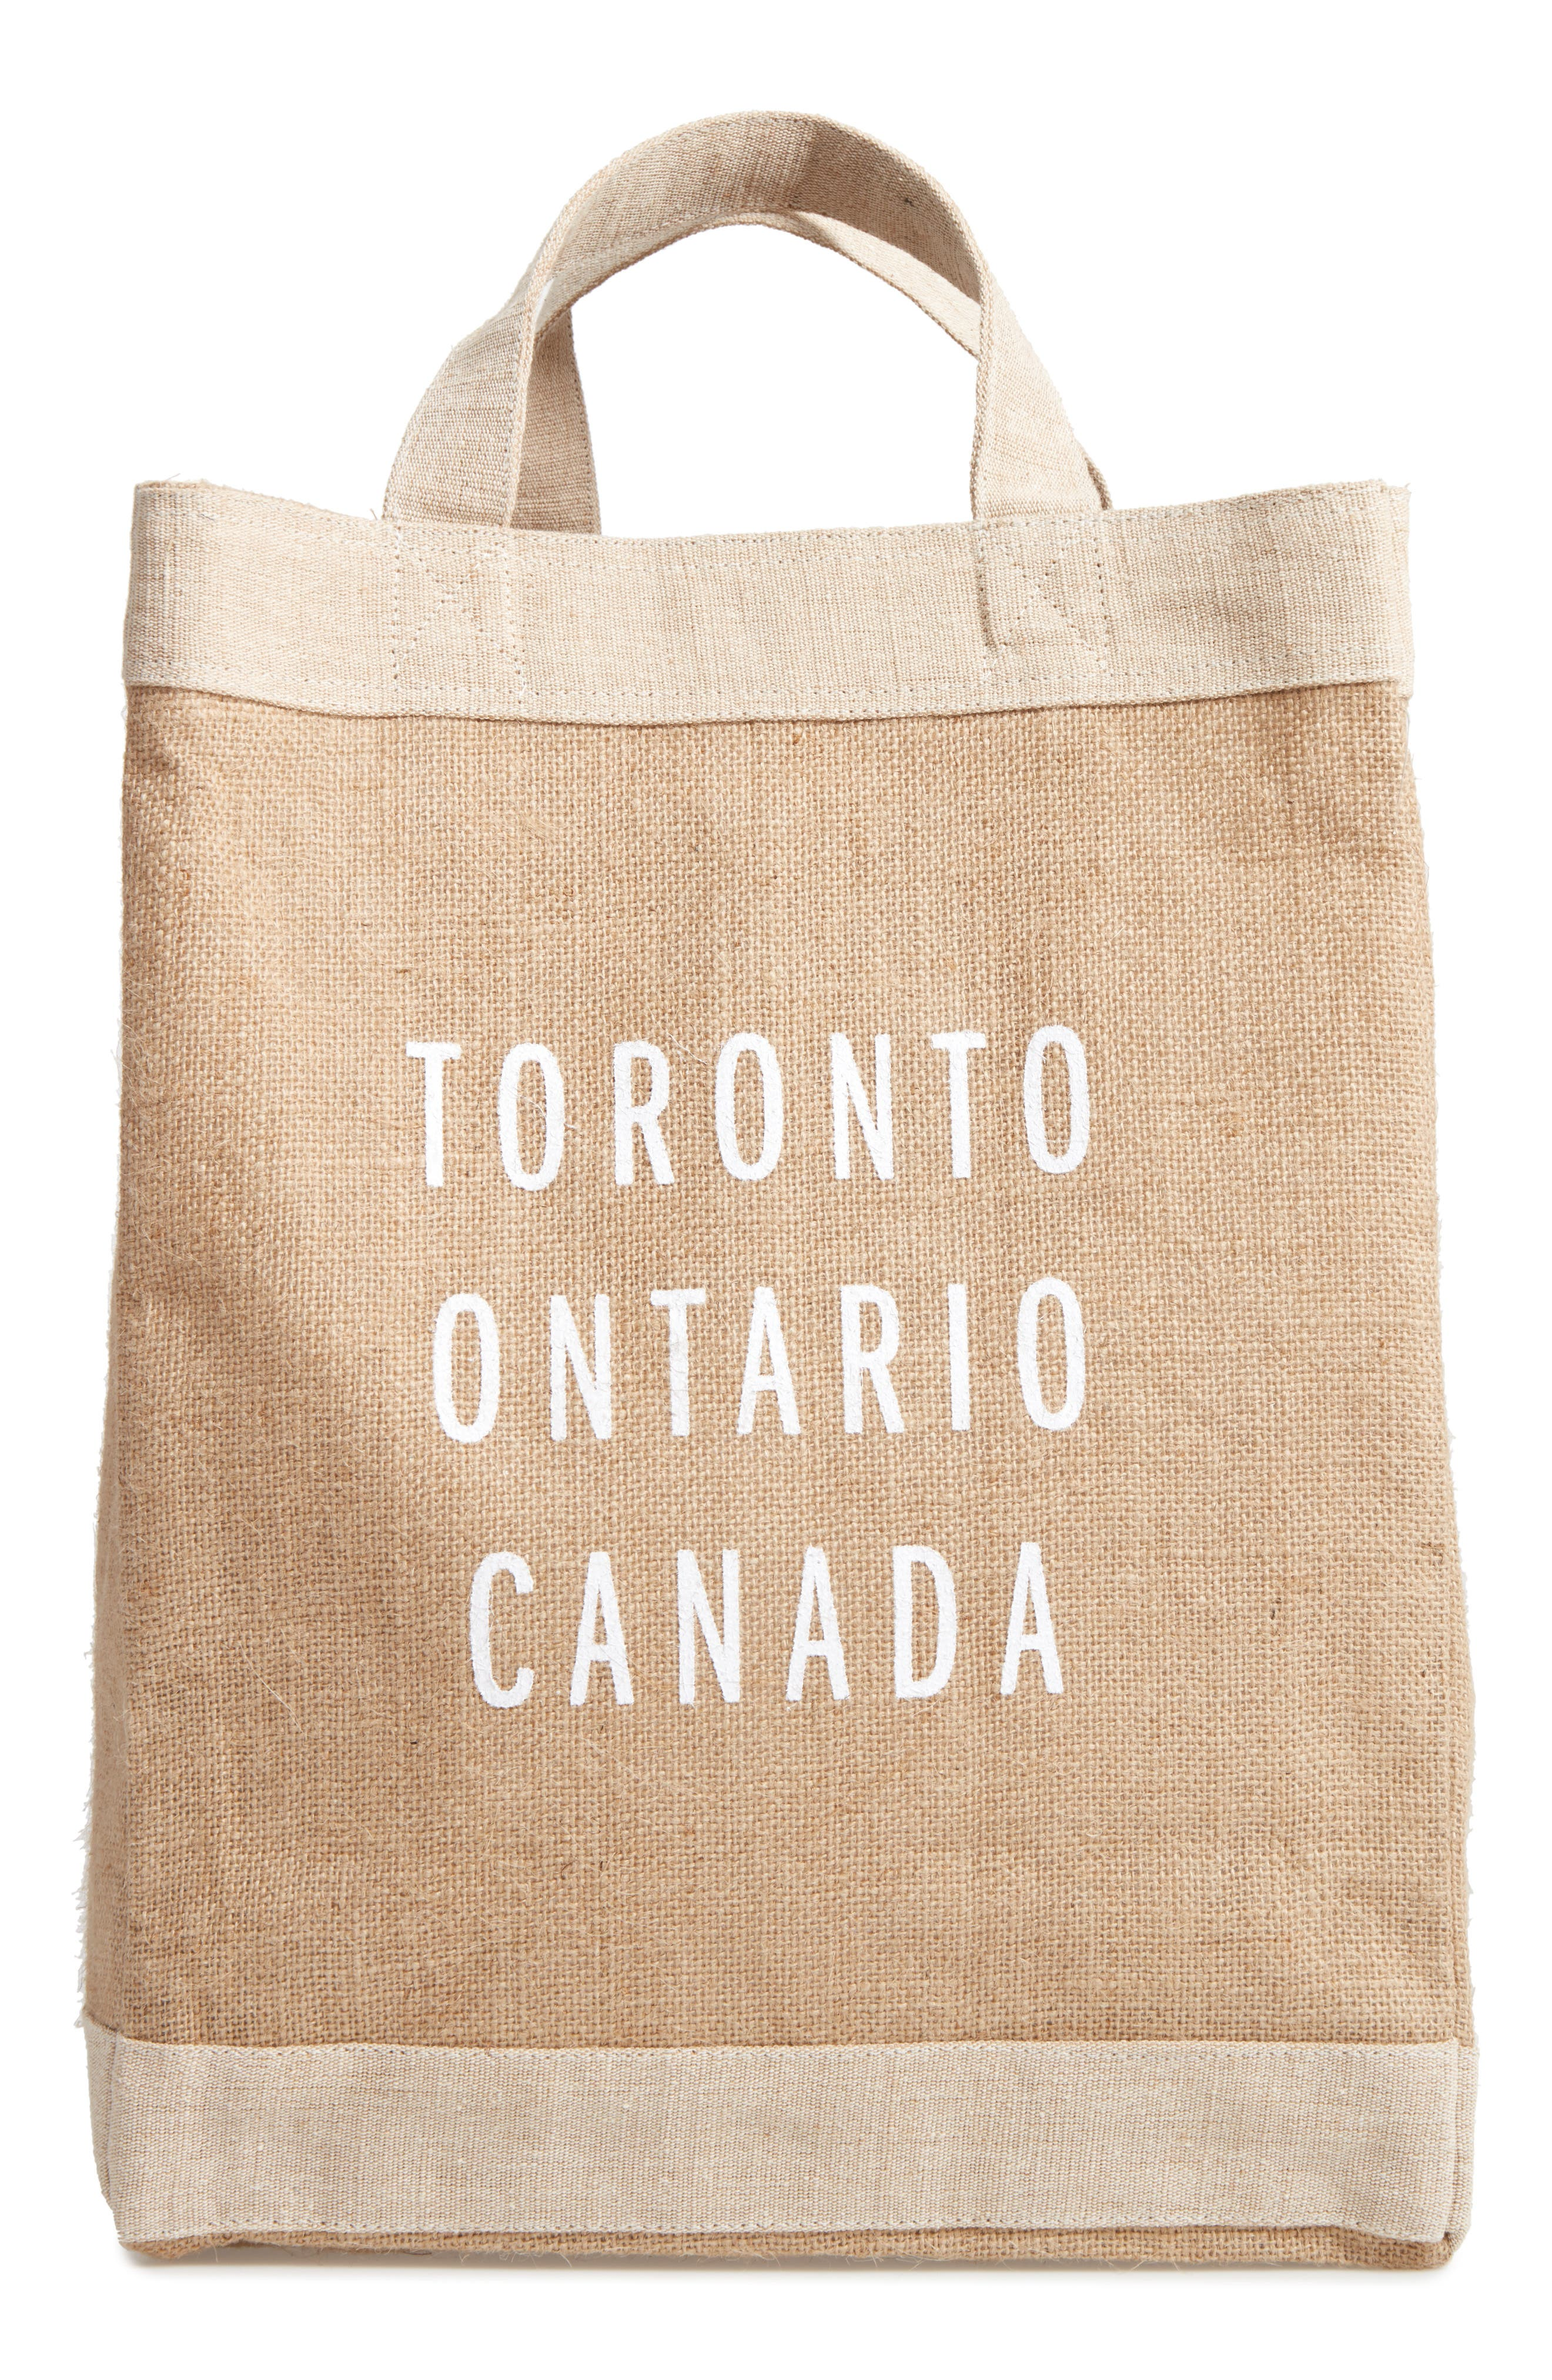 Toronto Simple Market Bag,                         Main,                         color, 200